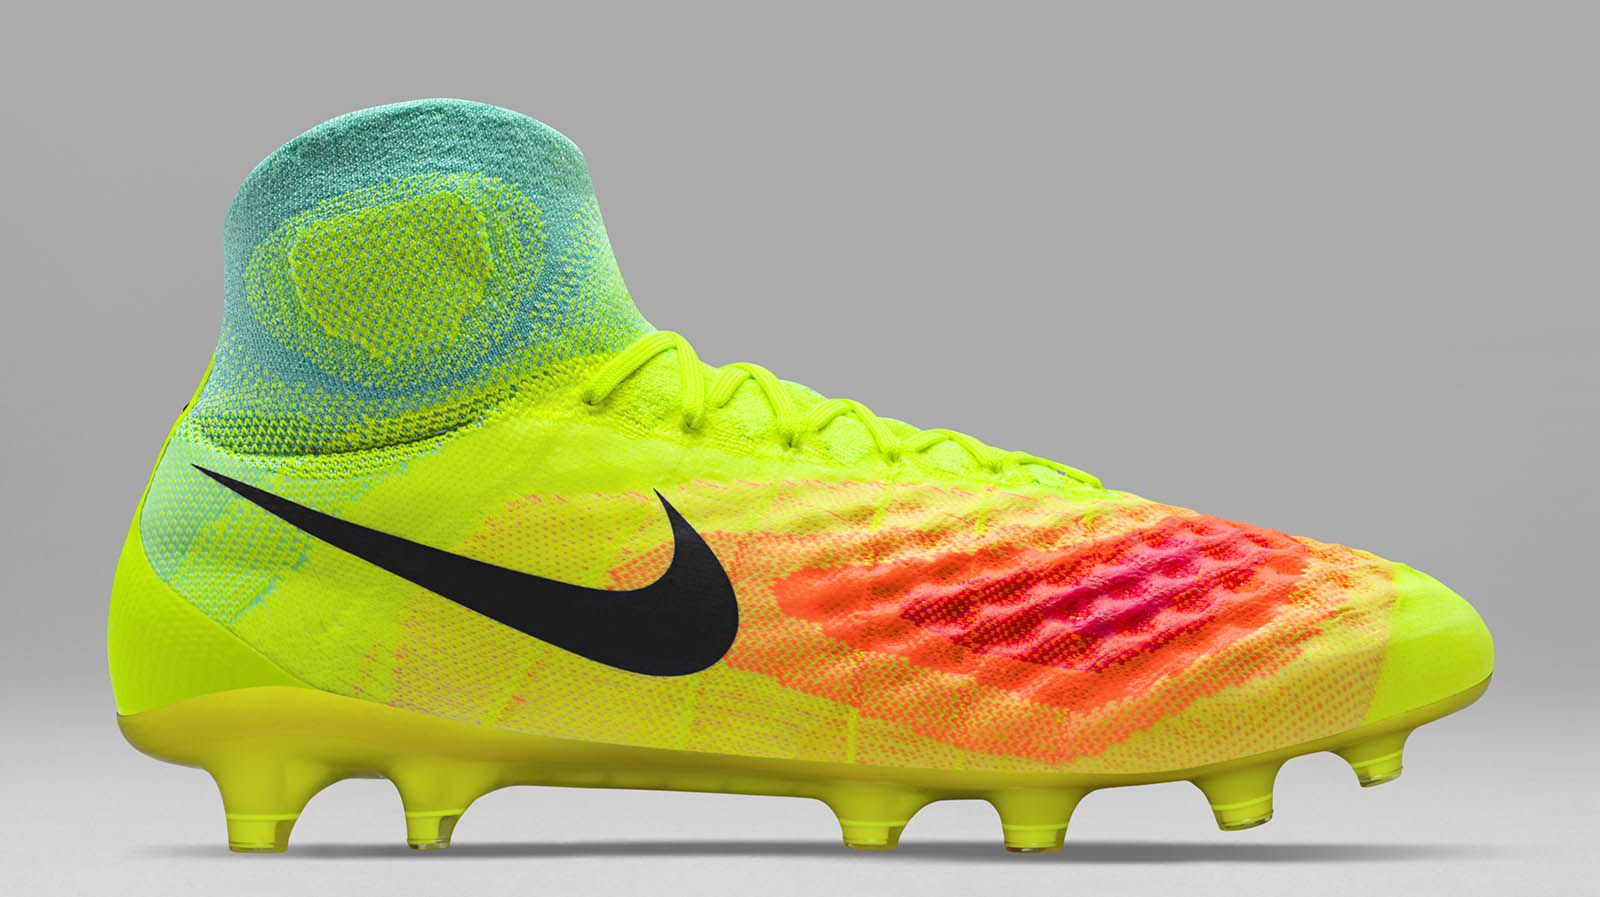 ee0d6c863 The next-gen Nike Magista Obra II football boots were introduced with an  extremely bold and flashy design.